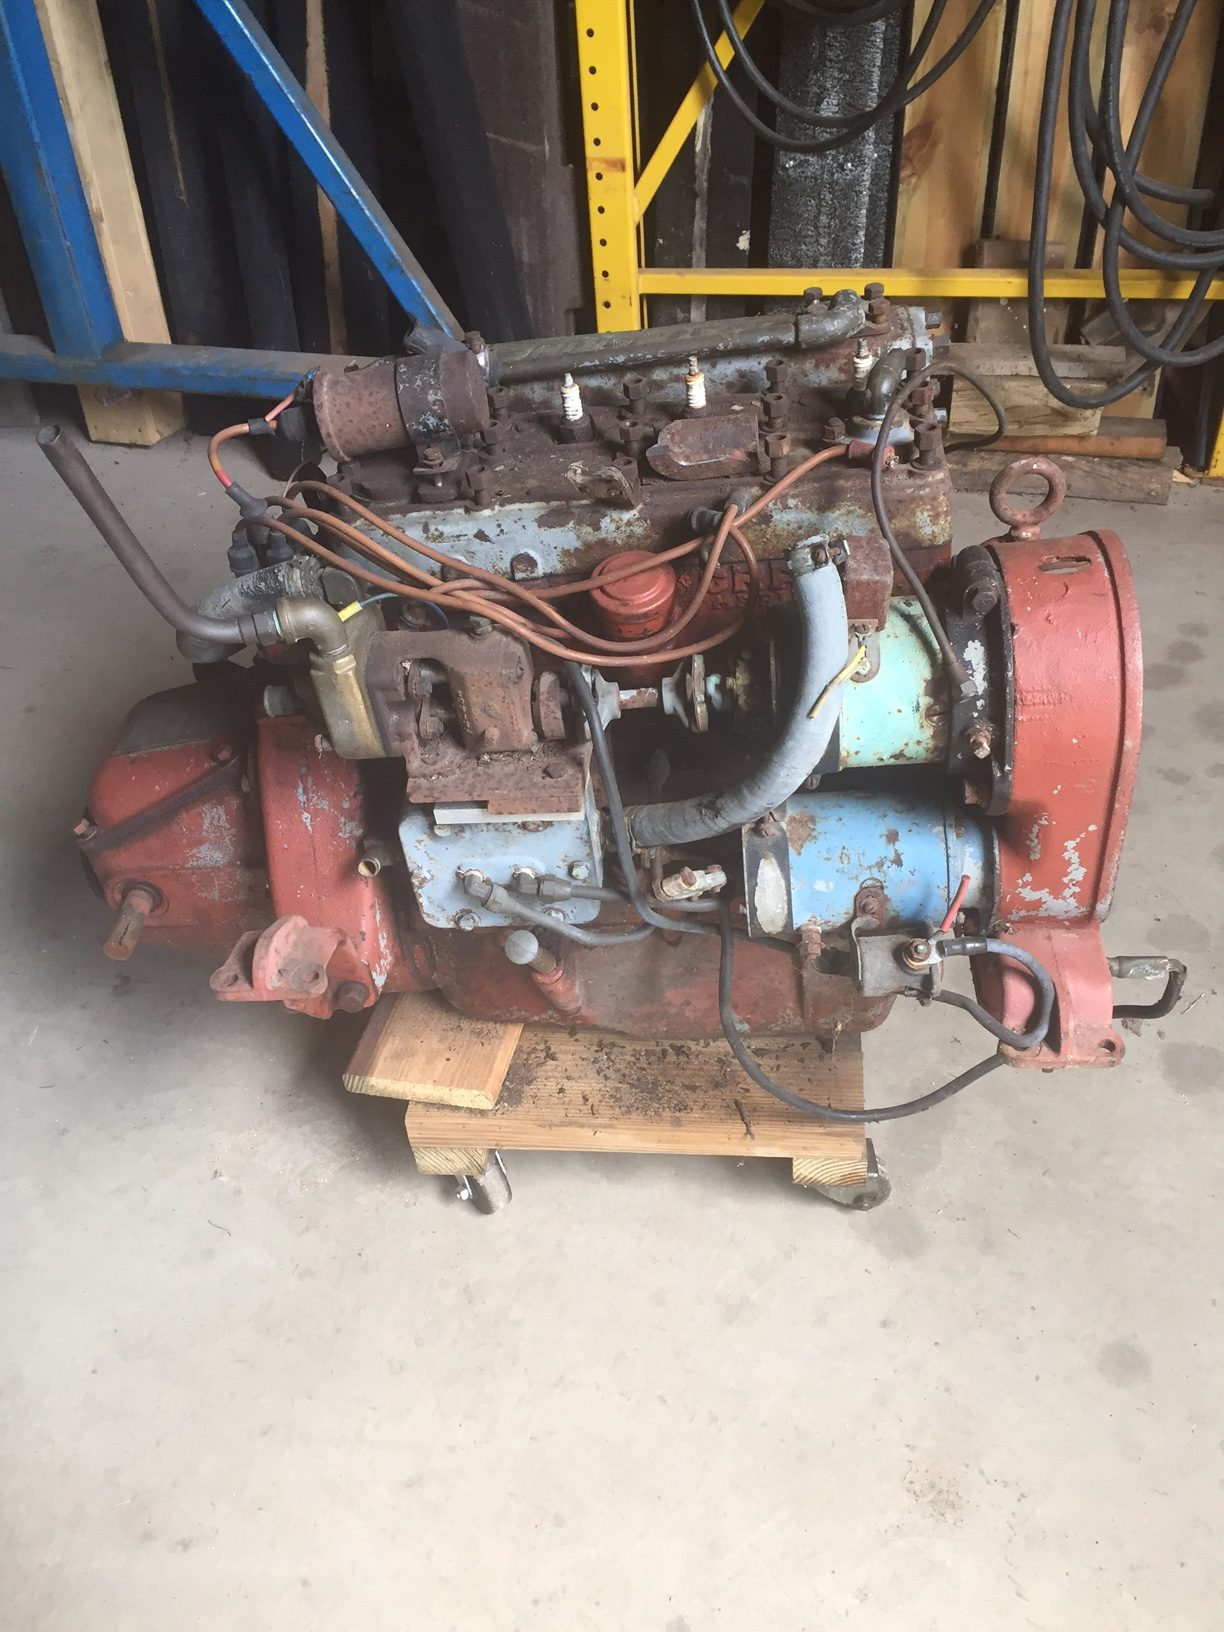 Used Boat Motors For Sale in Michigan   Antique Boat Engines